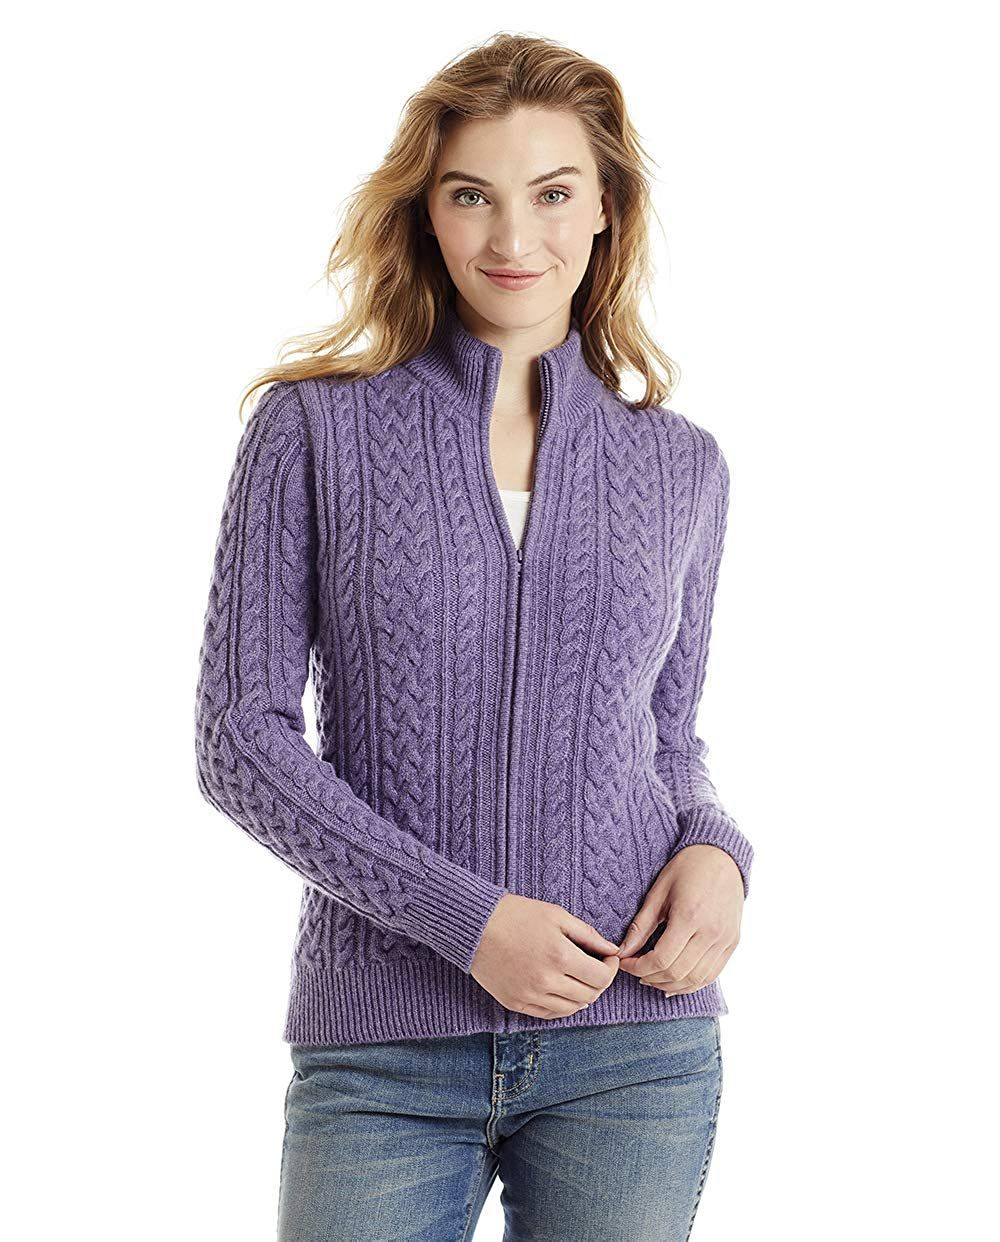 6f9a490d90 Invisible World Women s 100% Cashmere Cardigan Open Cable Knit Katy5.0 out  of 5